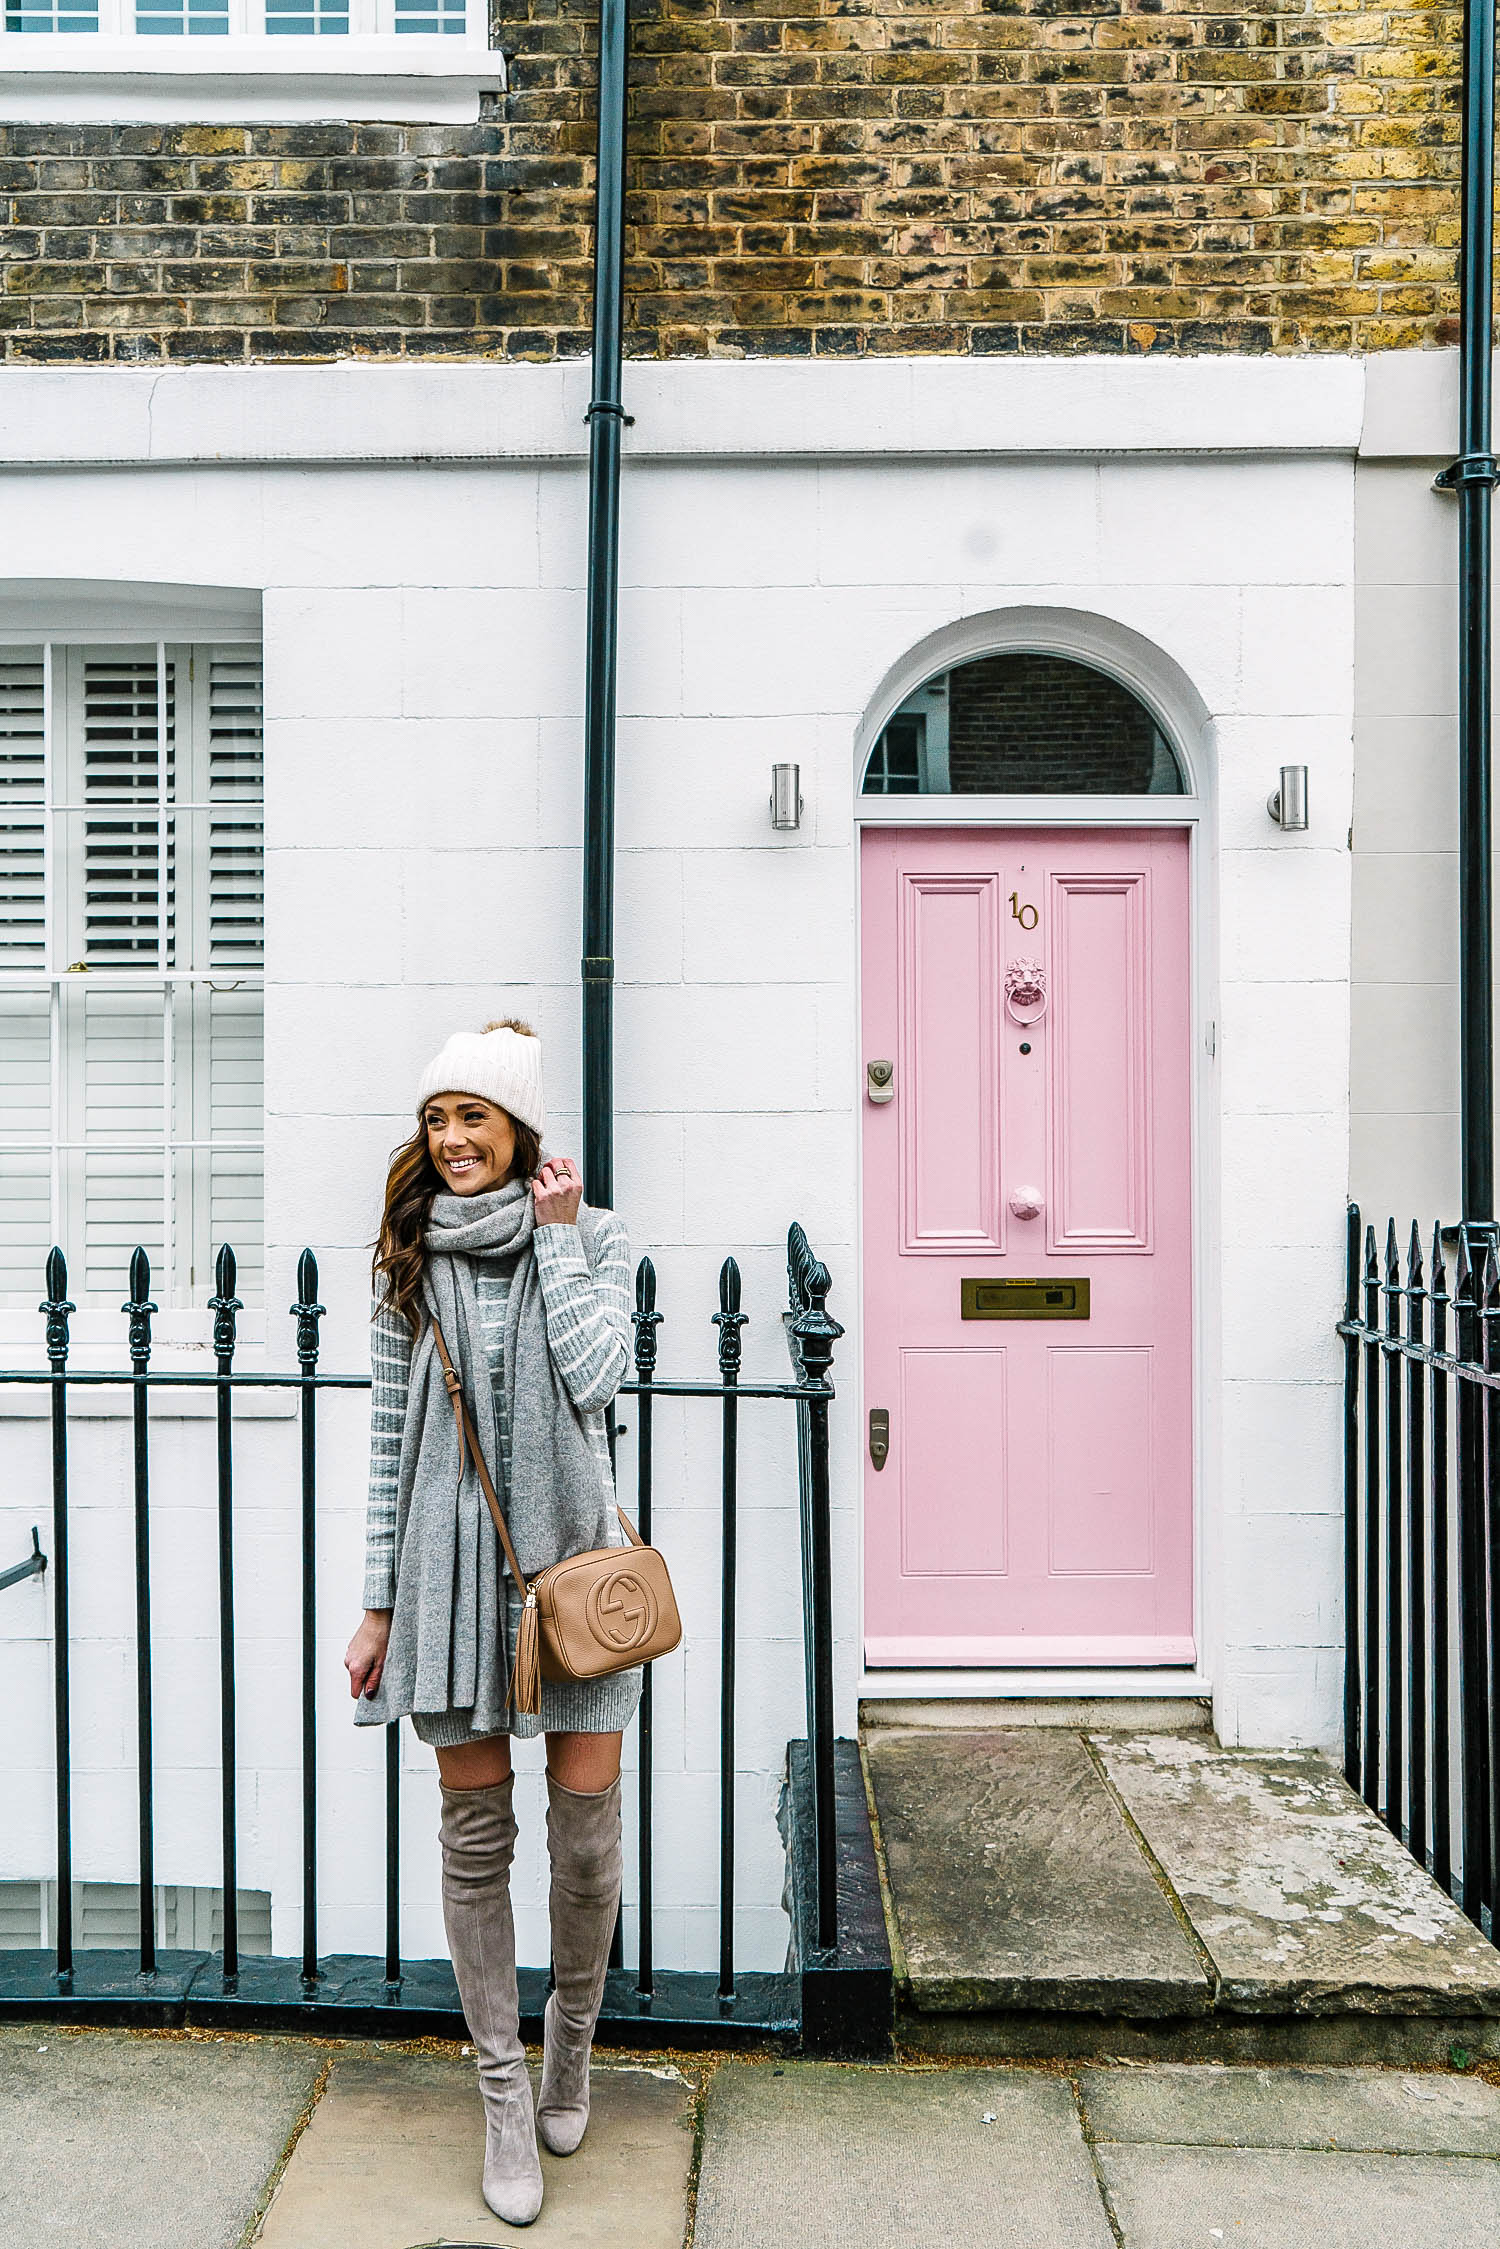 london, notting hill, most instagrammable spots in london, sweater dress, what to pack for london in the winter